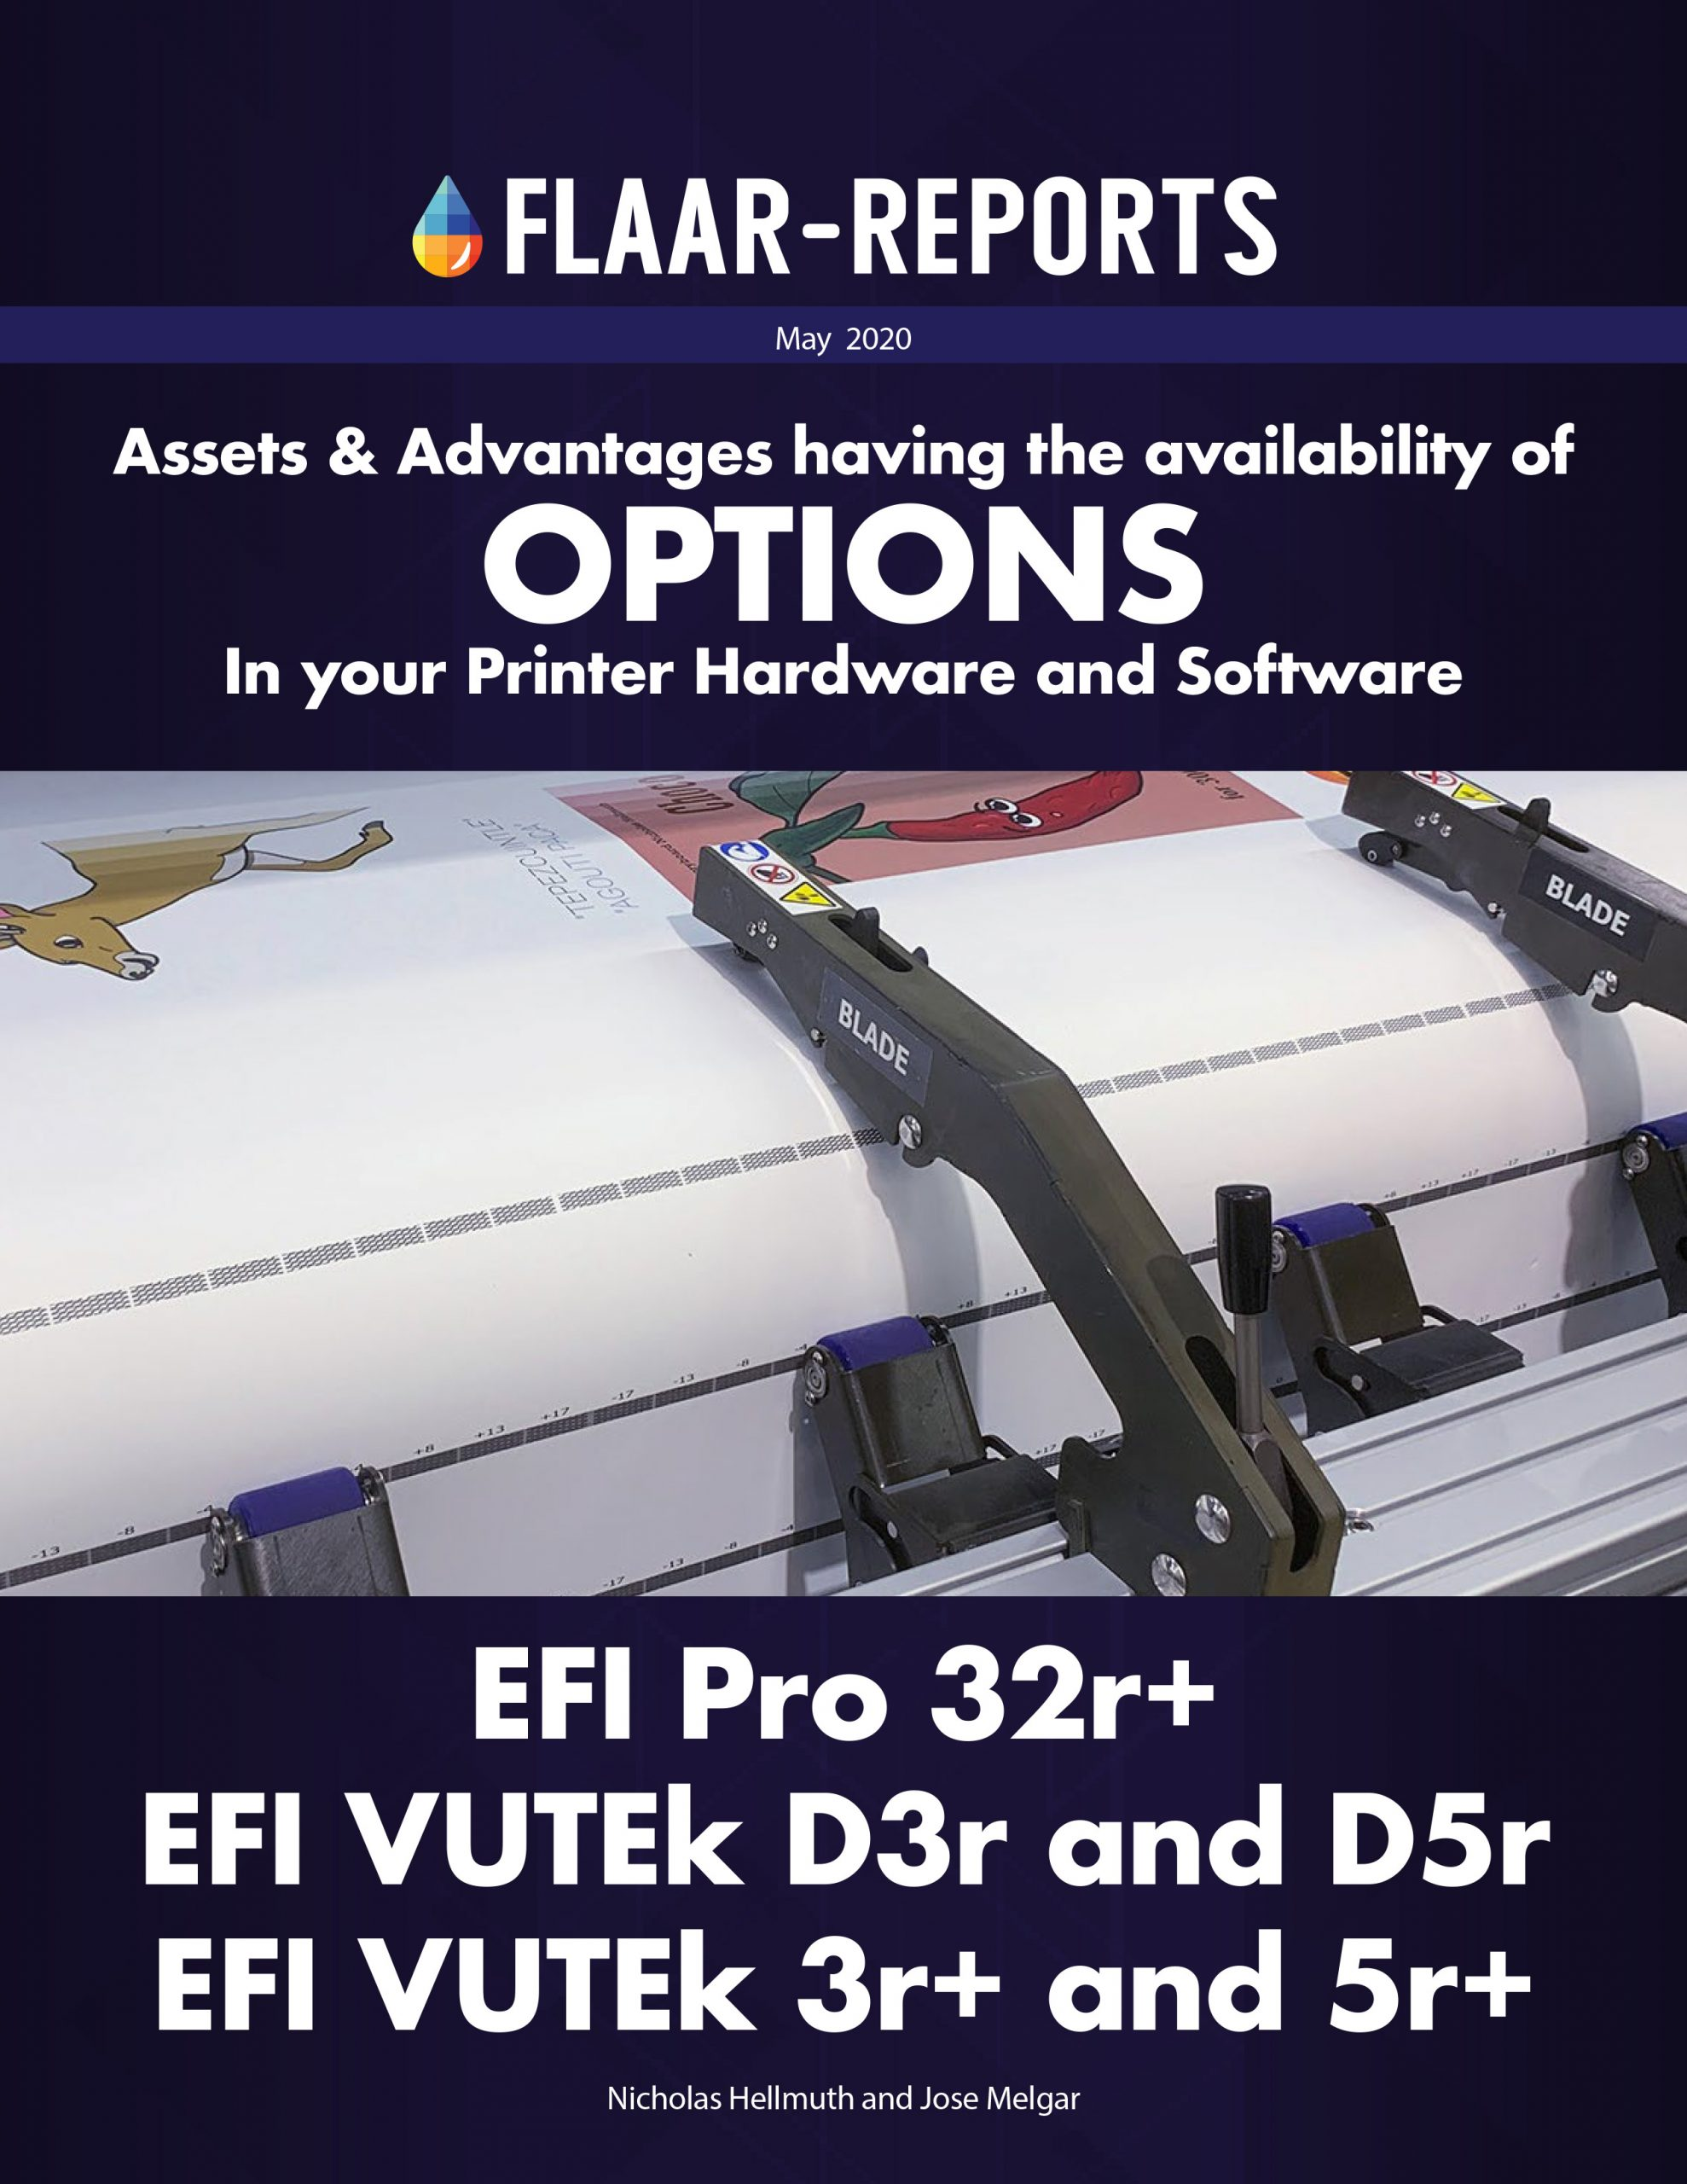 EFI-VUTEk-wide-format-Roll-to-Roll-UV-curing-inkjet-printer